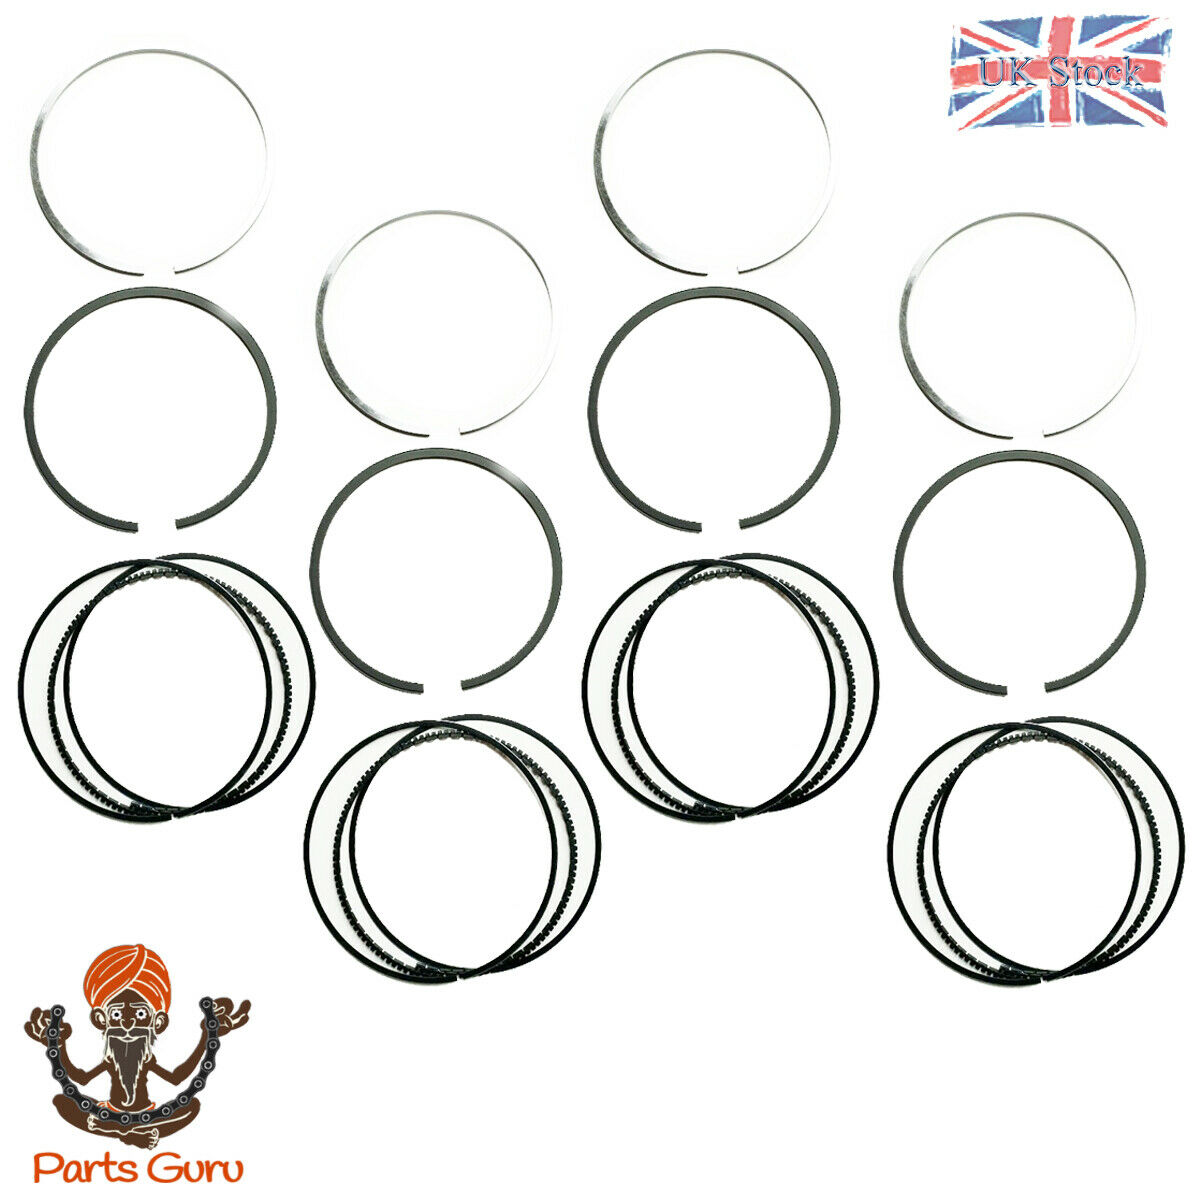 Piston rings set pour Ford Transit 2.3 L 2000-2006 MK6 Galaxy Scorpio